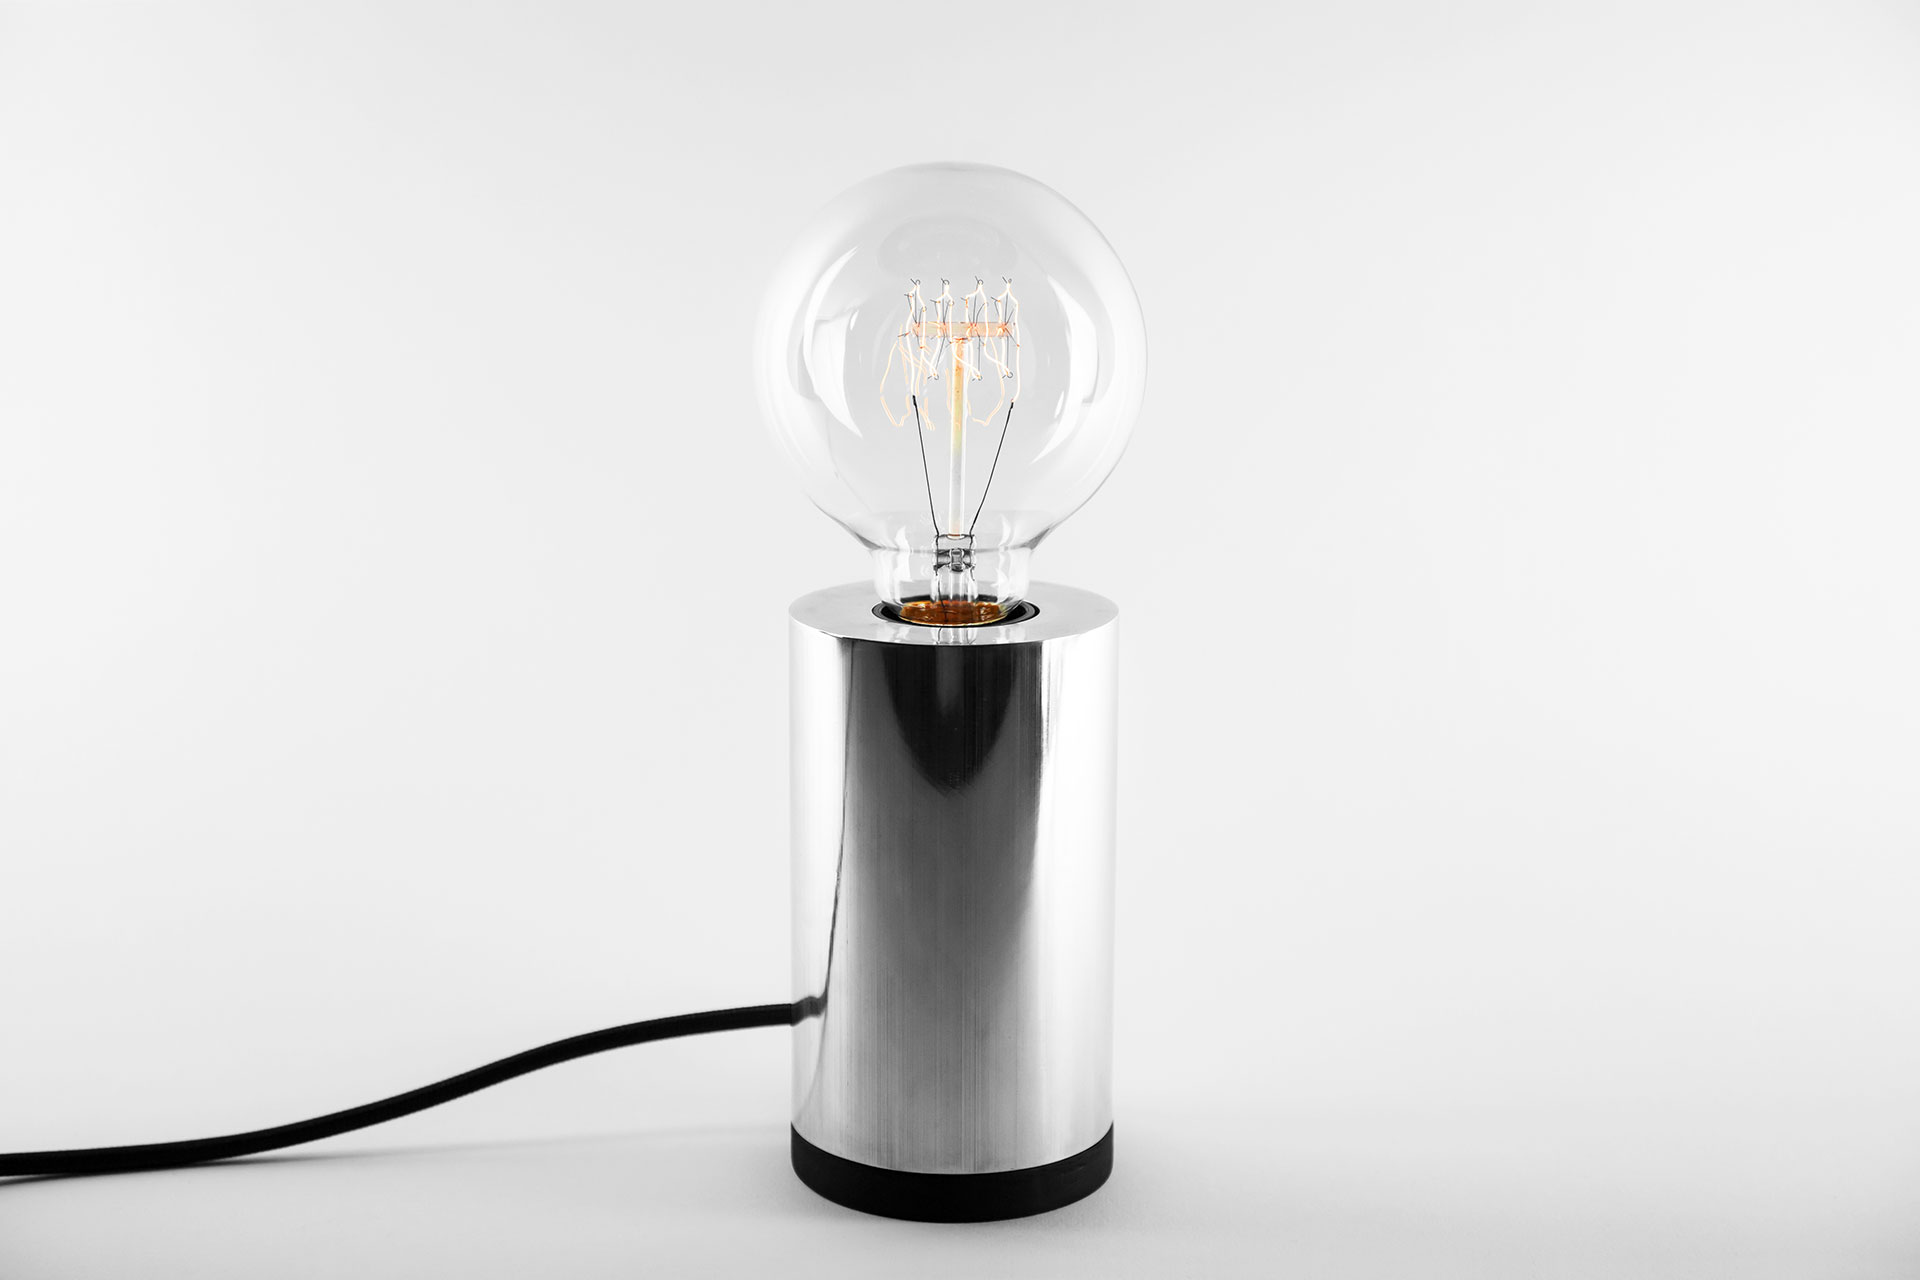 Aluminum table lamp with retro Tesla bulb inspired by masculine minimalist design